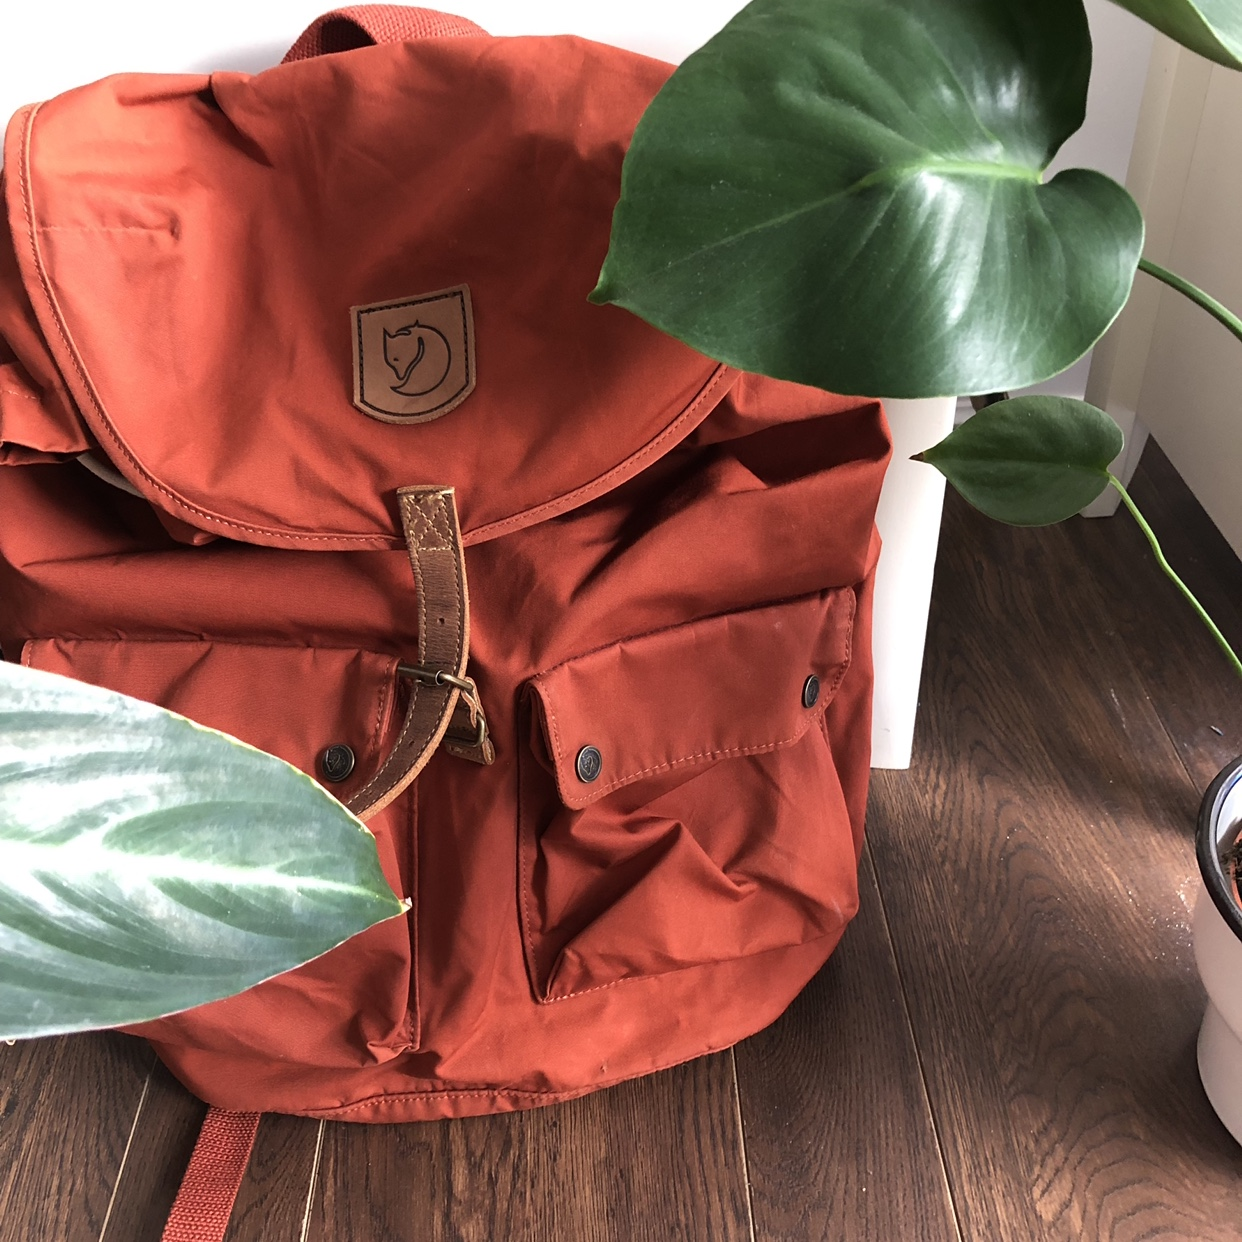 footwear in stock elegant shoes Fjallraven Greenland Backpack -